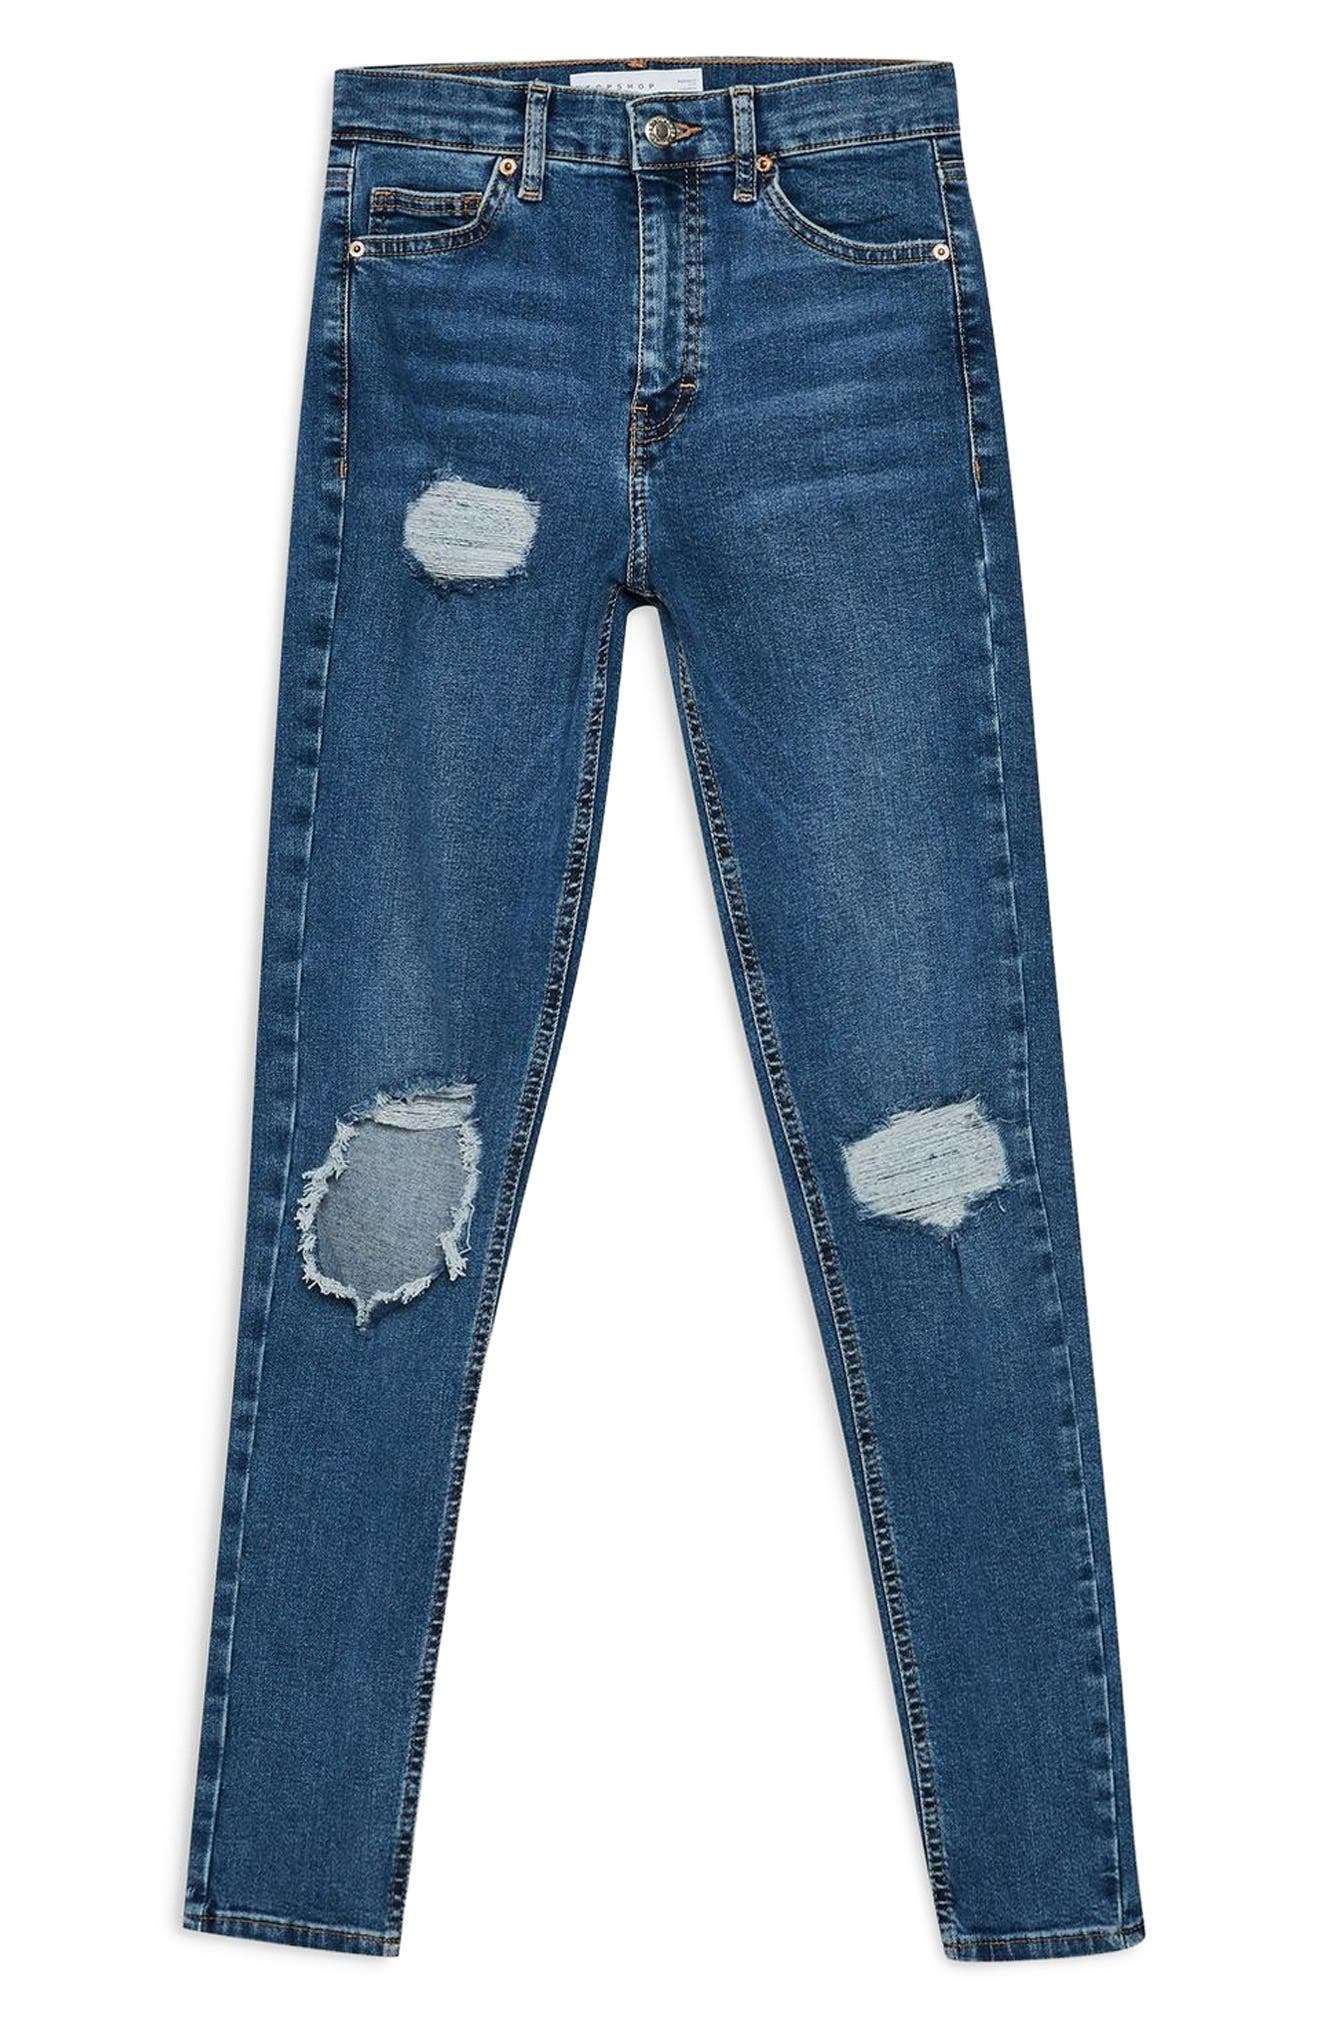 TOPSHOP, Jamie Ripped High Waist Skinny Jeans, Alternate thumbnail 3, color, MID DENIM